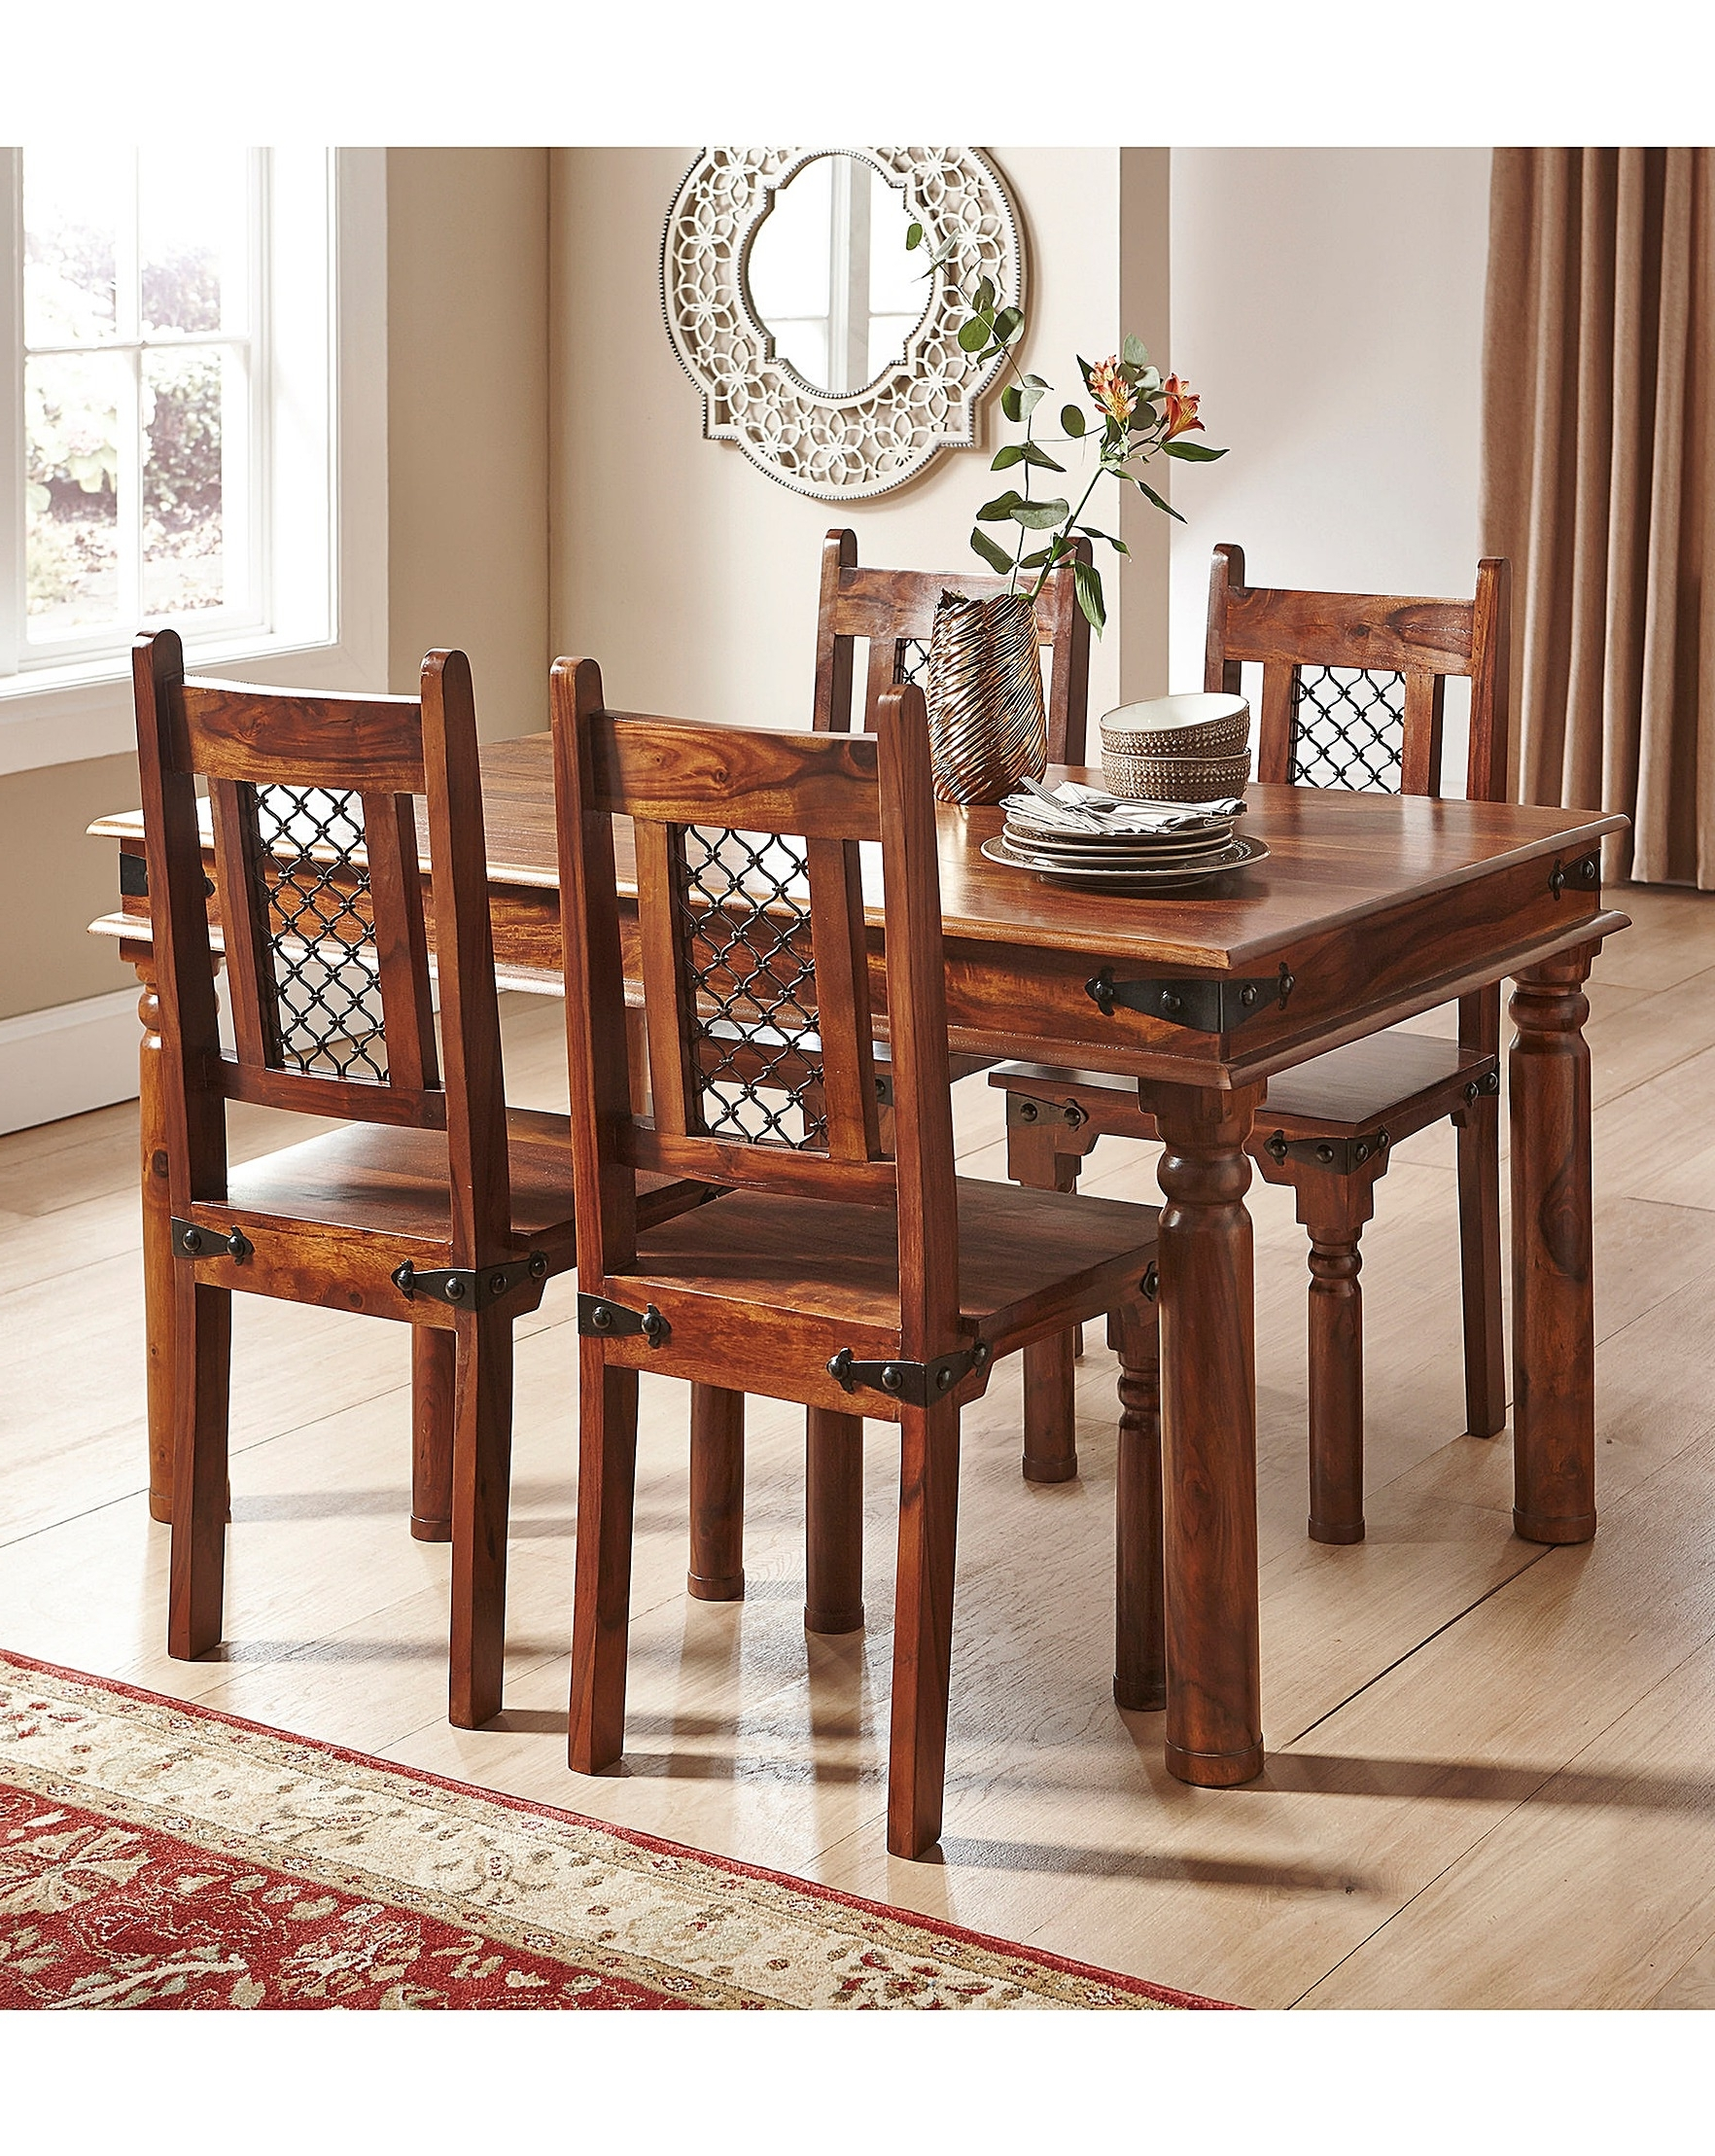 2017 Jaipur Sheesham Dining Table & 4 Chairs (Gallery 15 of 25)